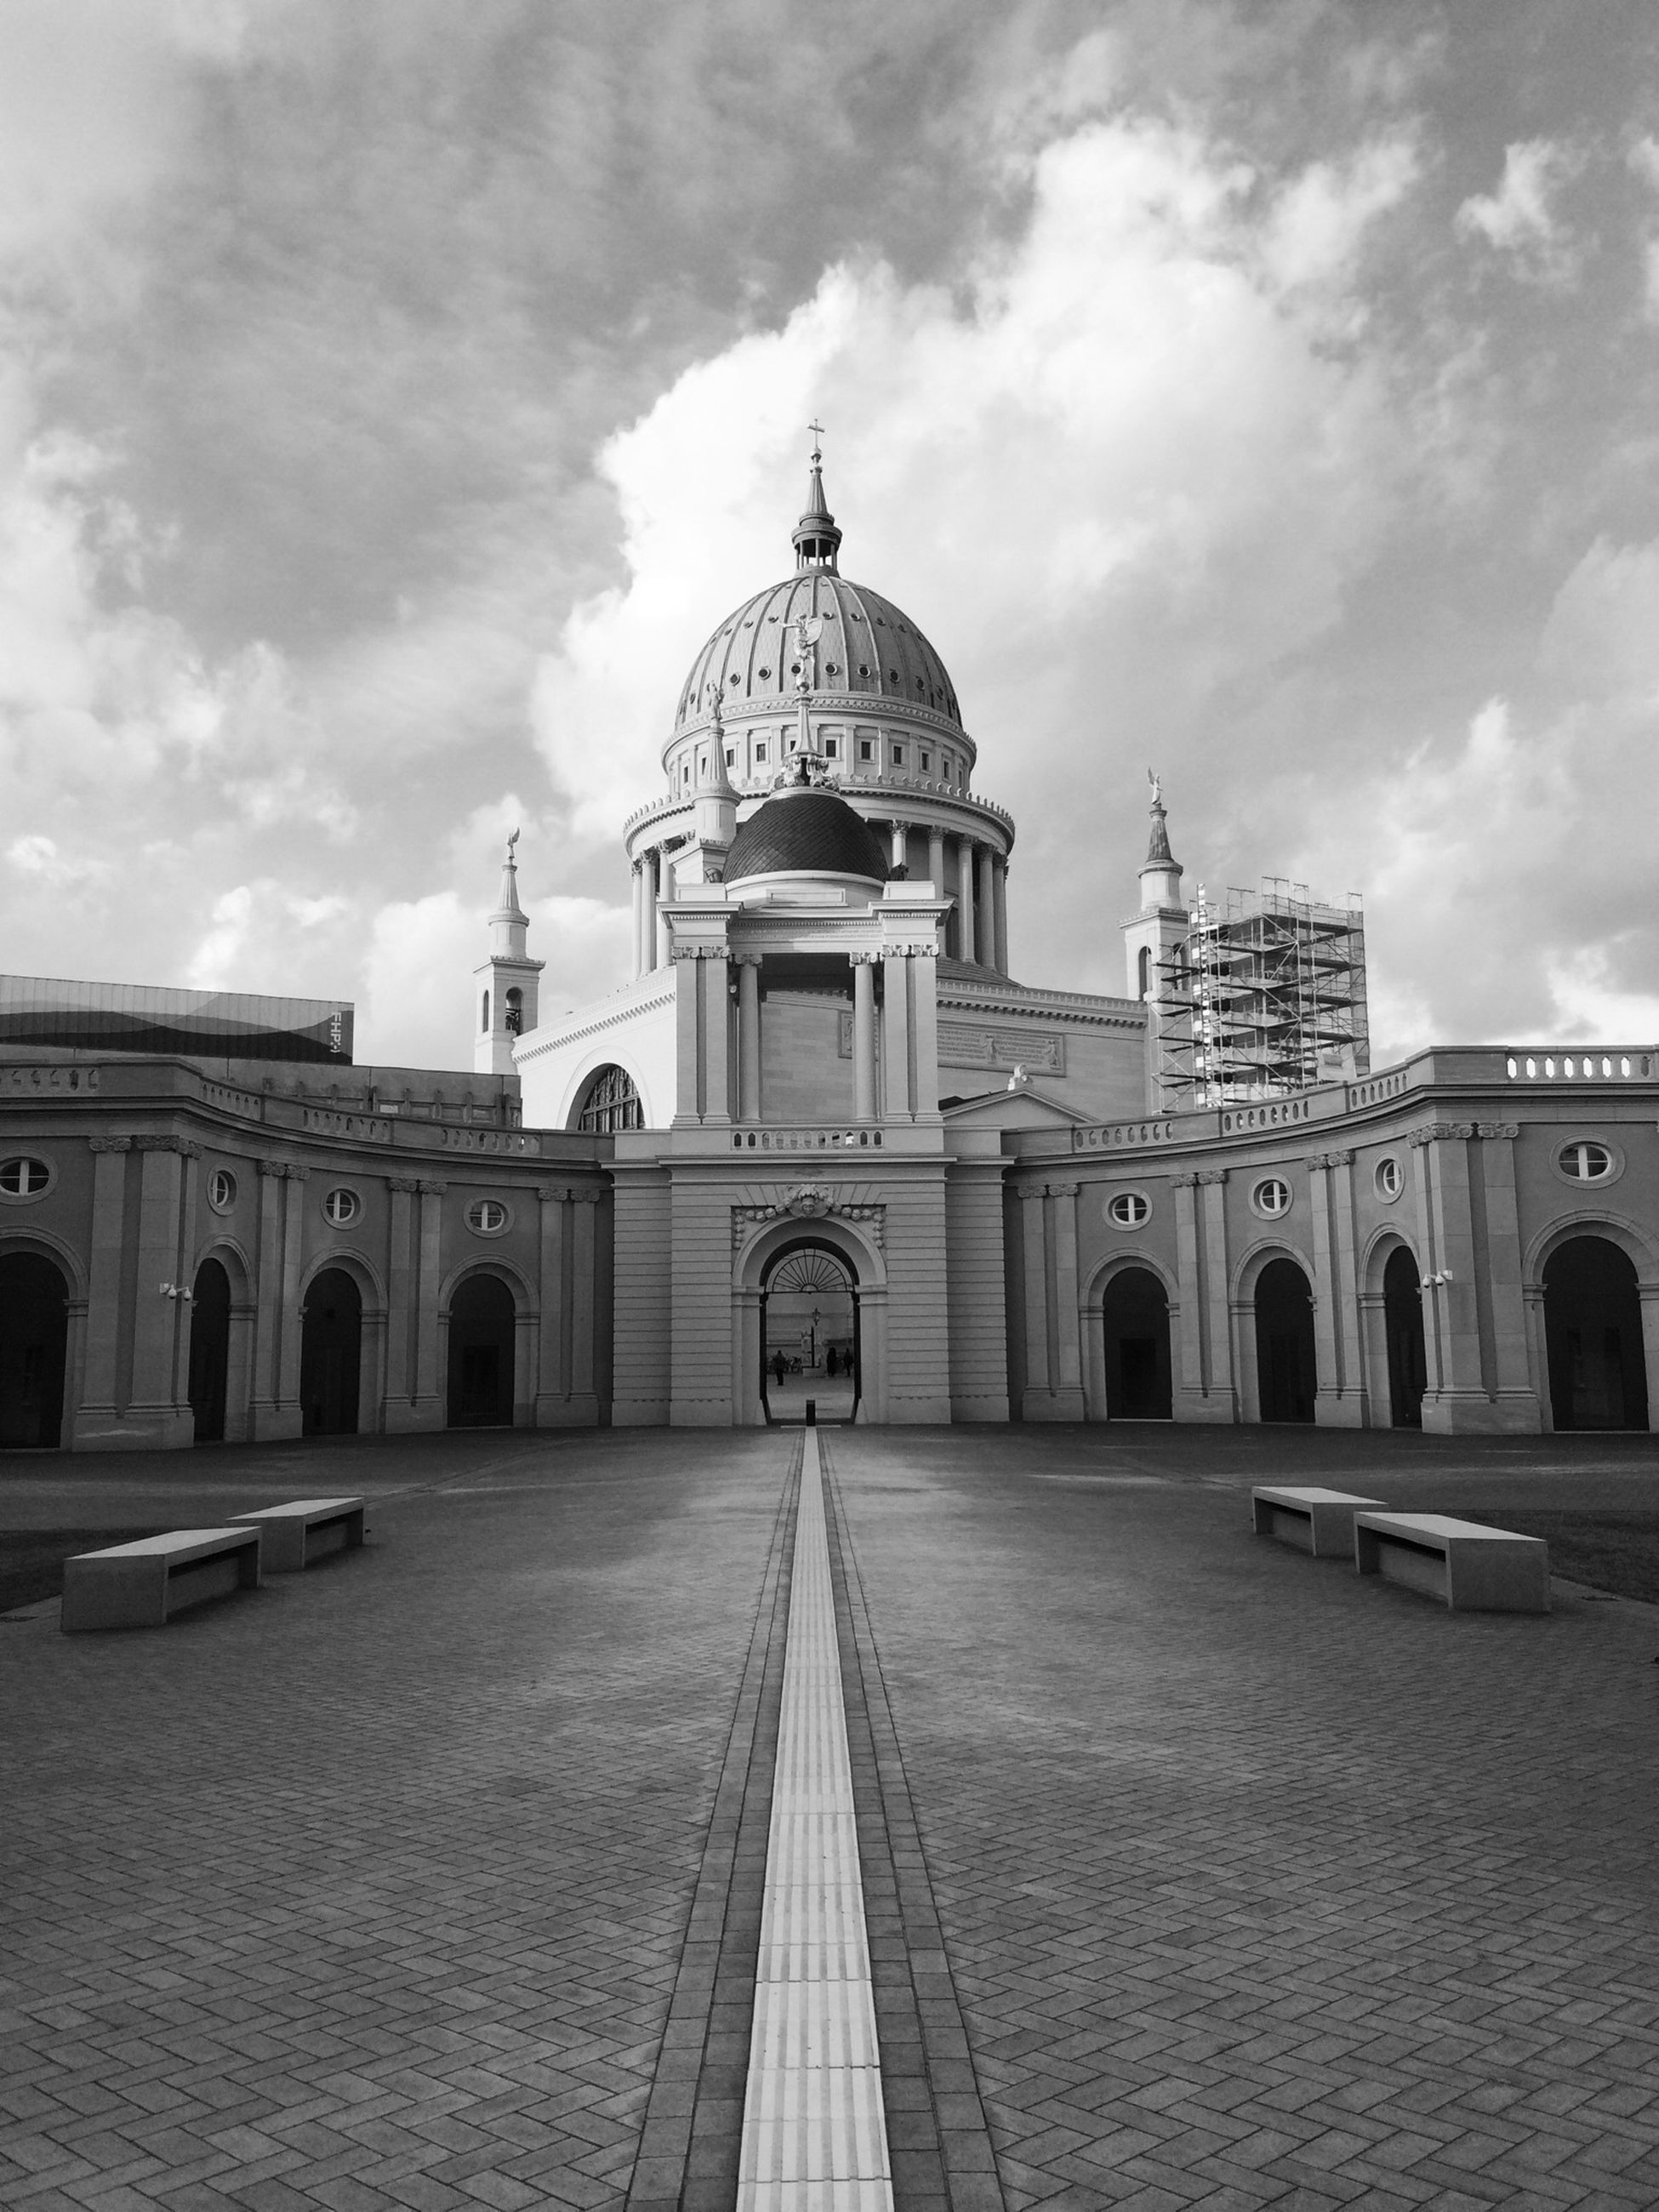 architecture, built structure, building exterior, dome, place of worship, religion, sky, church, spirituality, arch, cathedral, famous place, travel destinations, facade, cloud - sky, history, travel, tourism